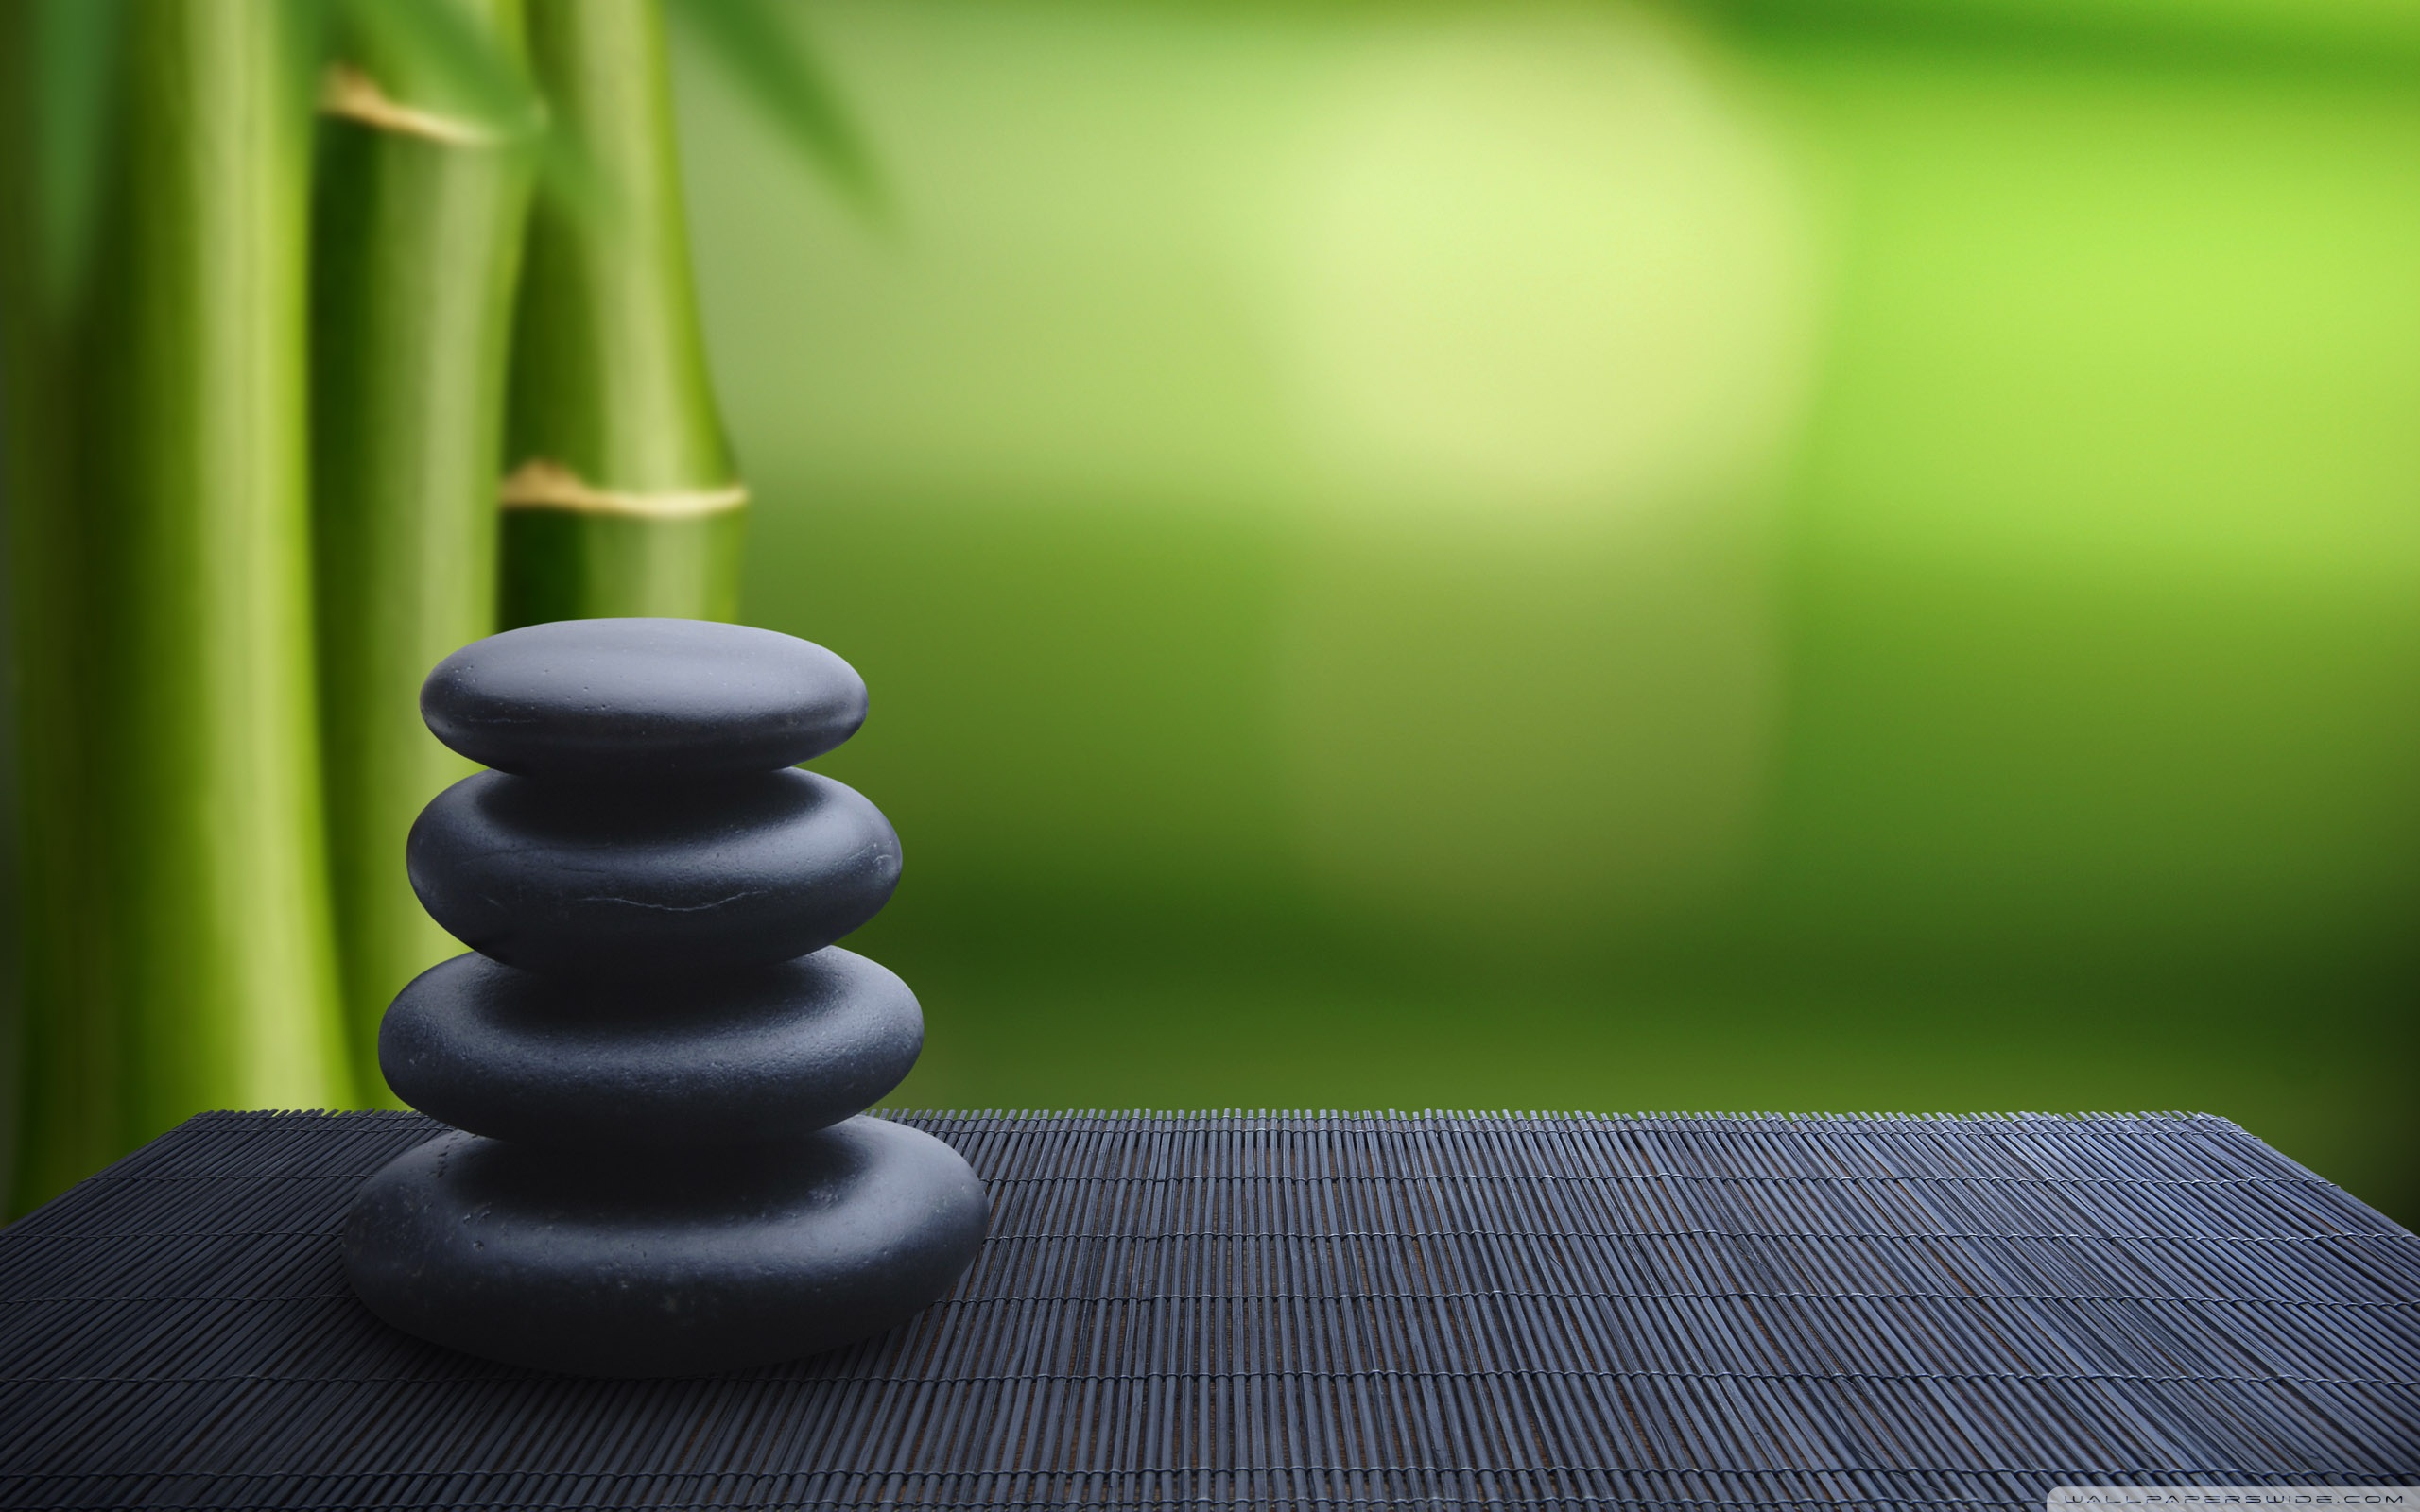 zen_stones_background-wallpaper-2560×1600 (1)